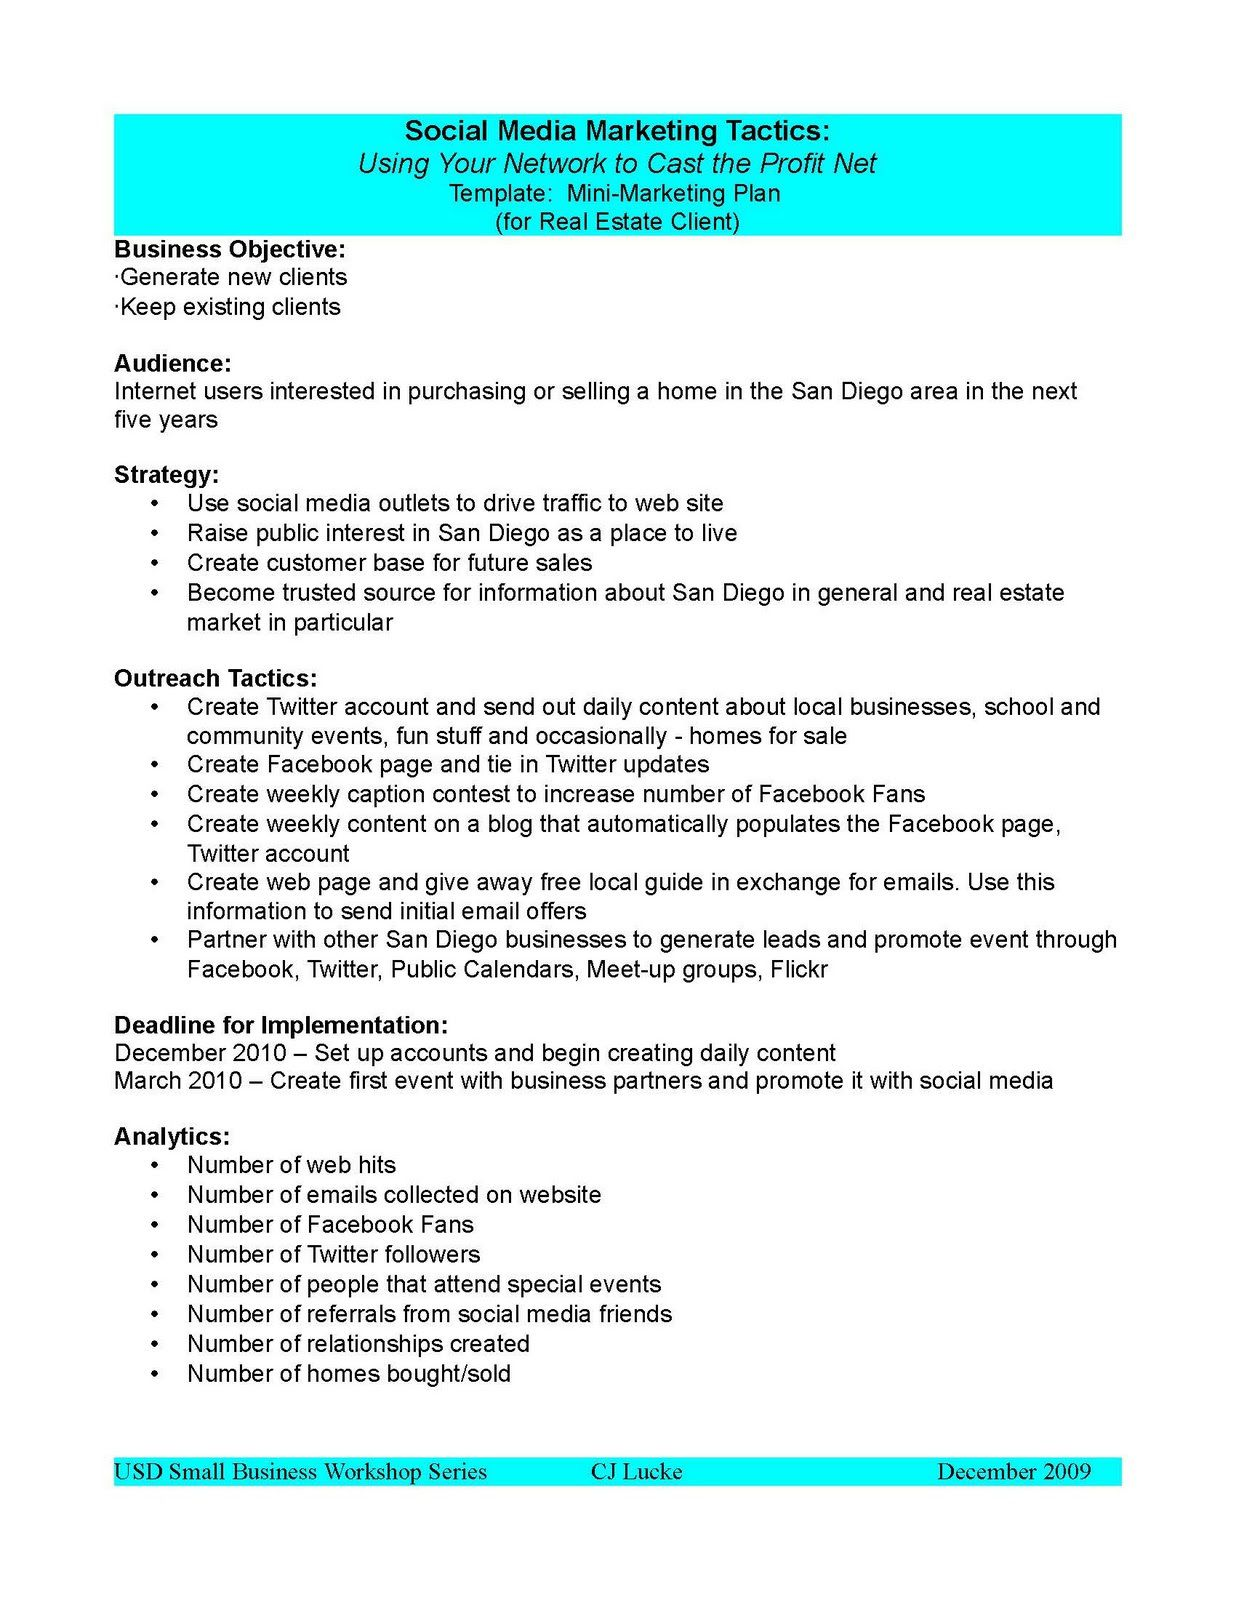 007 Archaicawful Social Media Plan Example Pdf Sample  Template MarketingFull